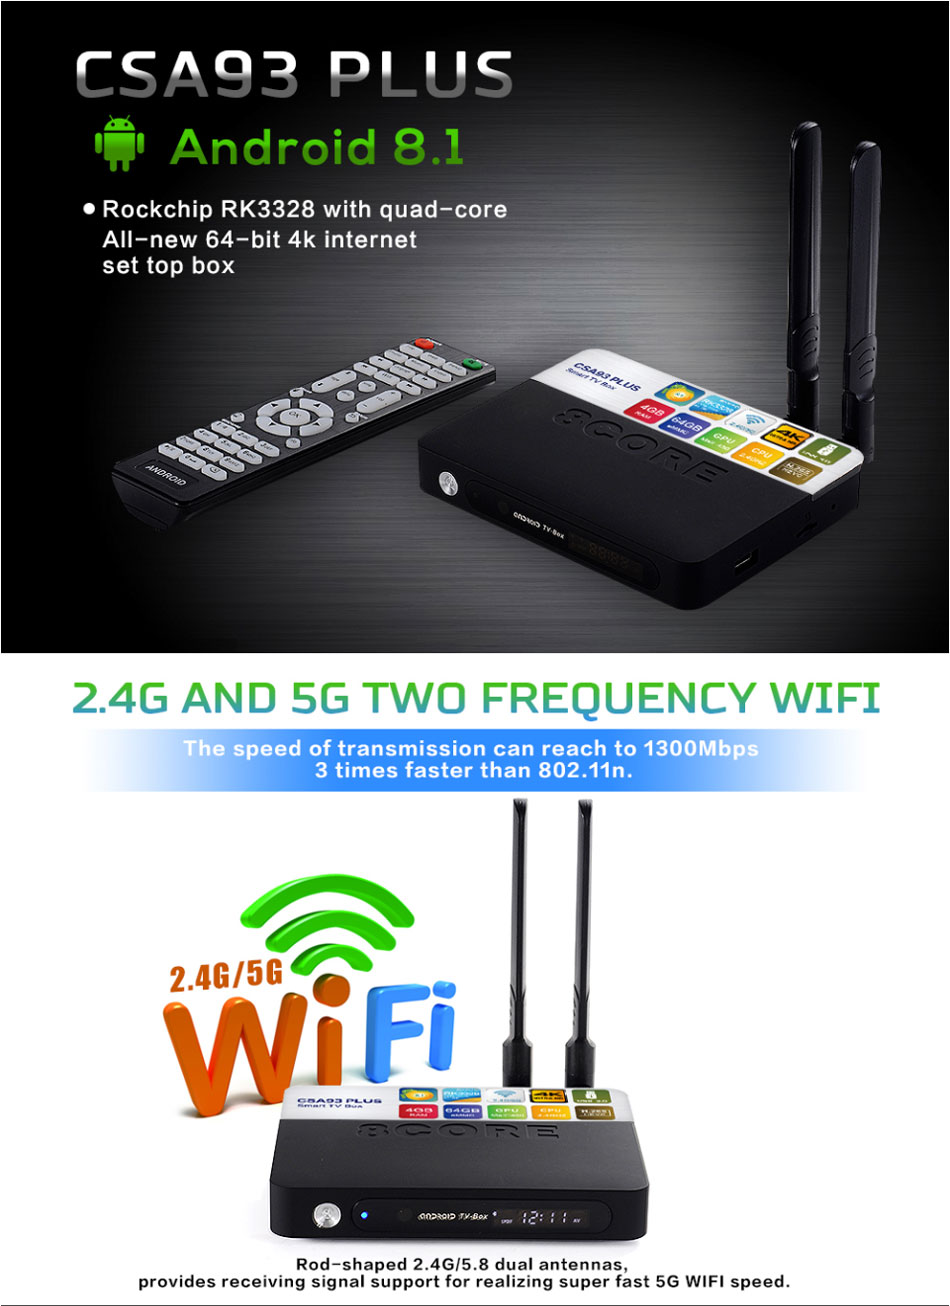 CSA93 Plus RK3328 4GB 64GB 5G WIFI bluetooth 4.0 Android 4K TV Box with Time Display